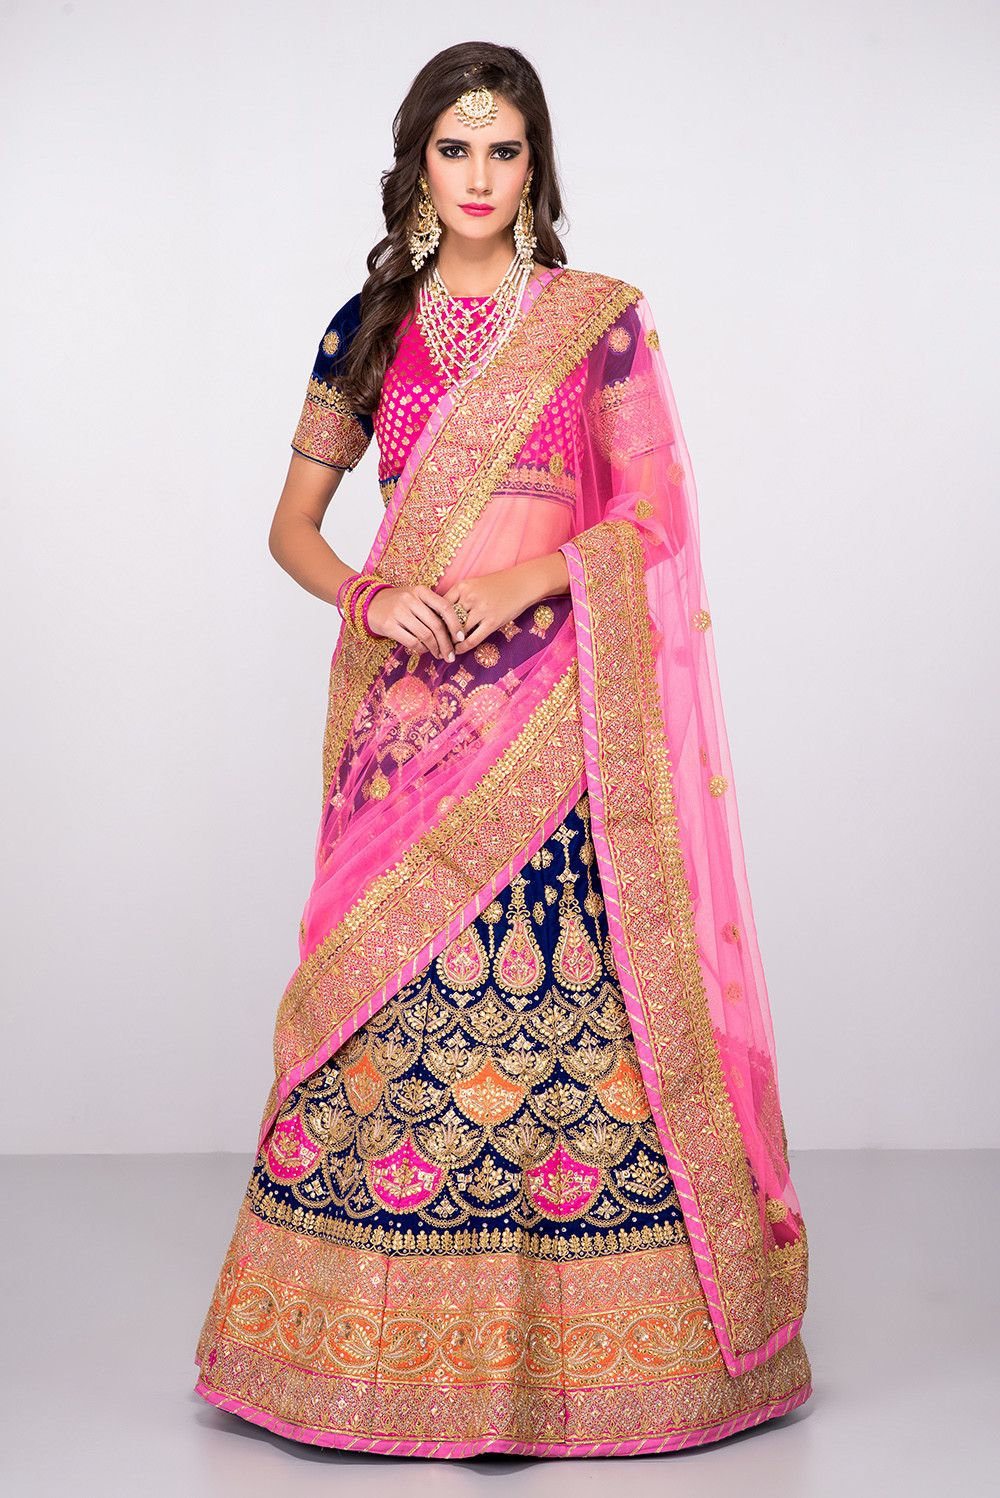 Rent THE STYLE LOFT BY RITU DEORA - Pink And Blue Gota Work Lehenga ...